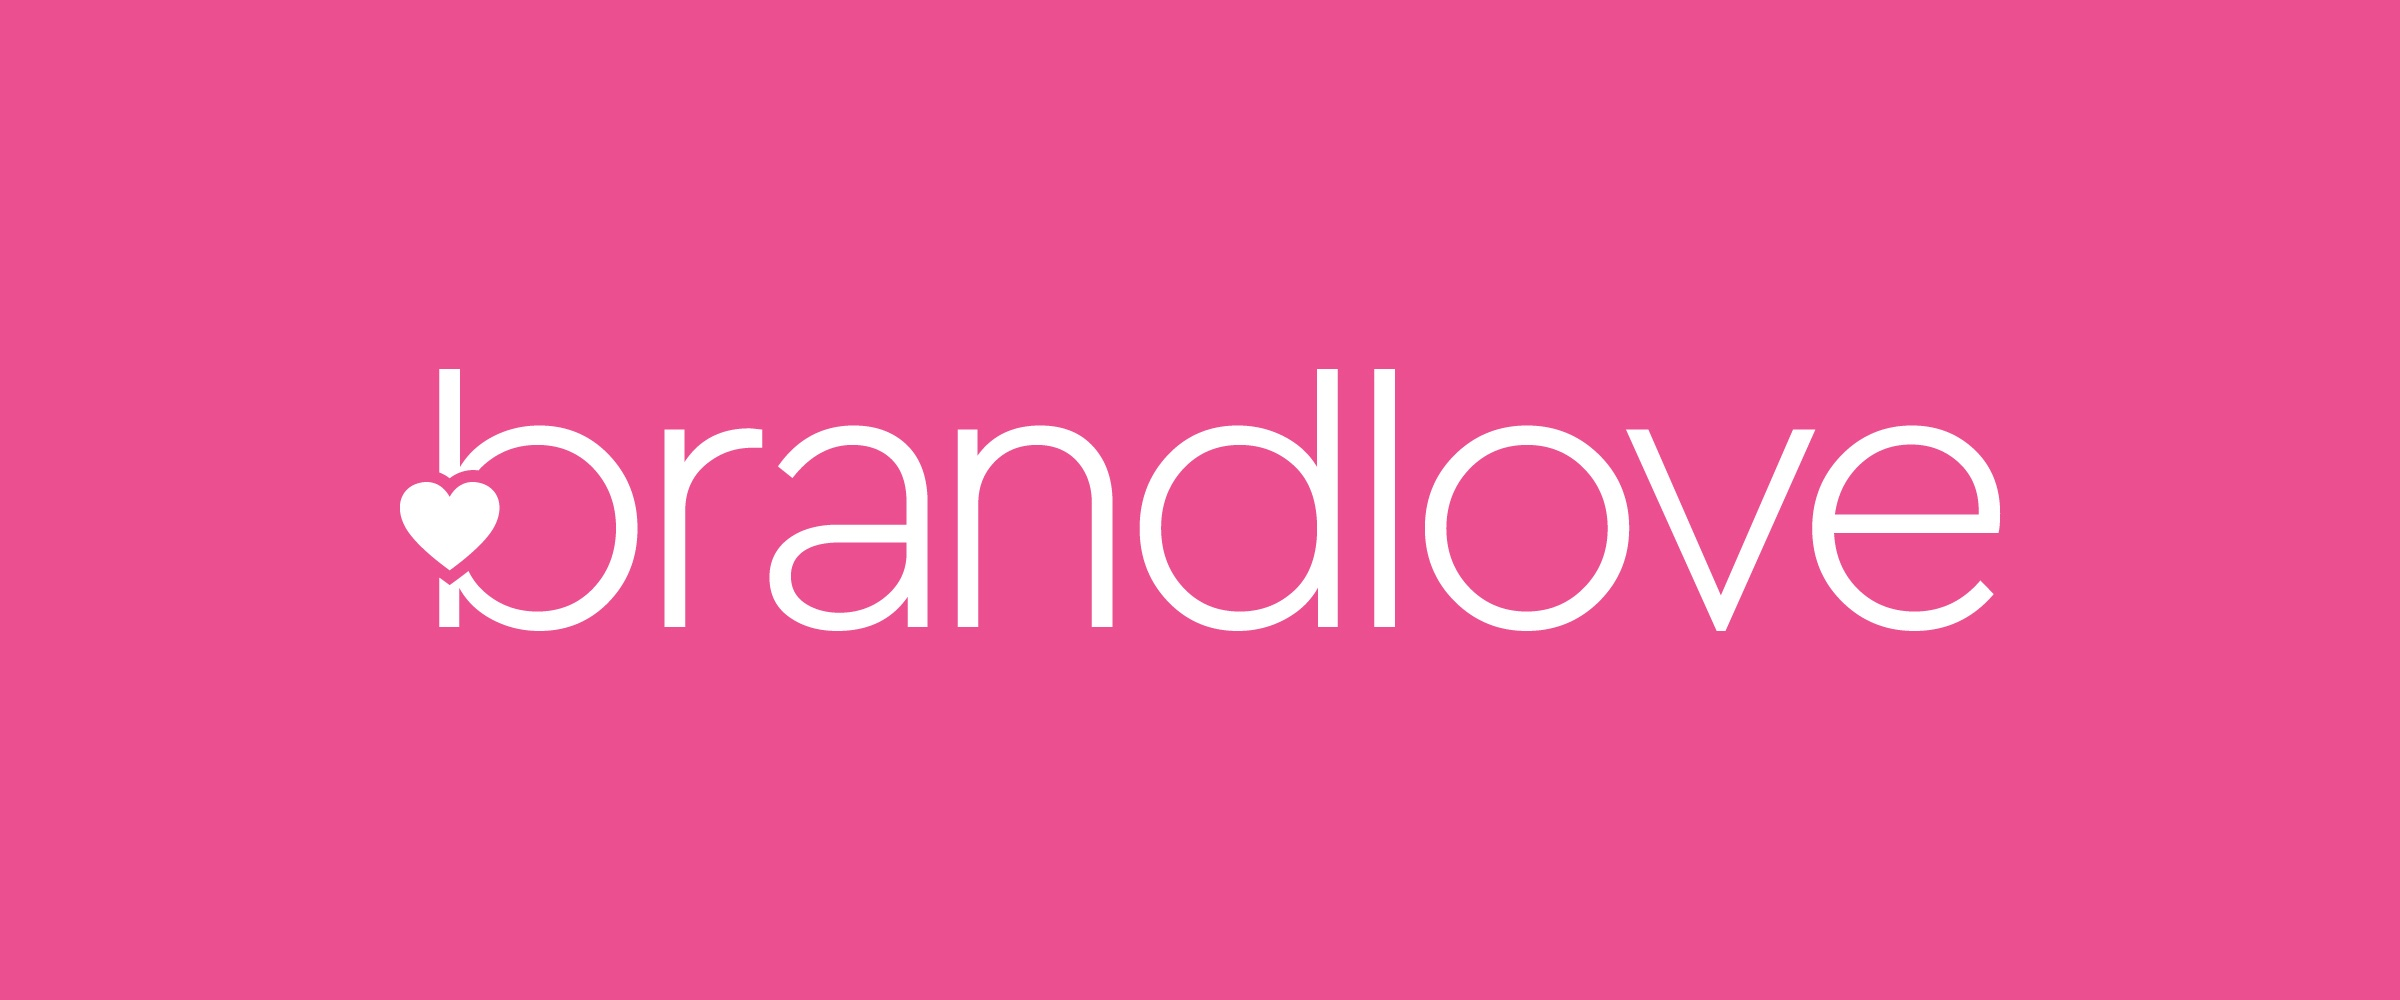 BrandLove education